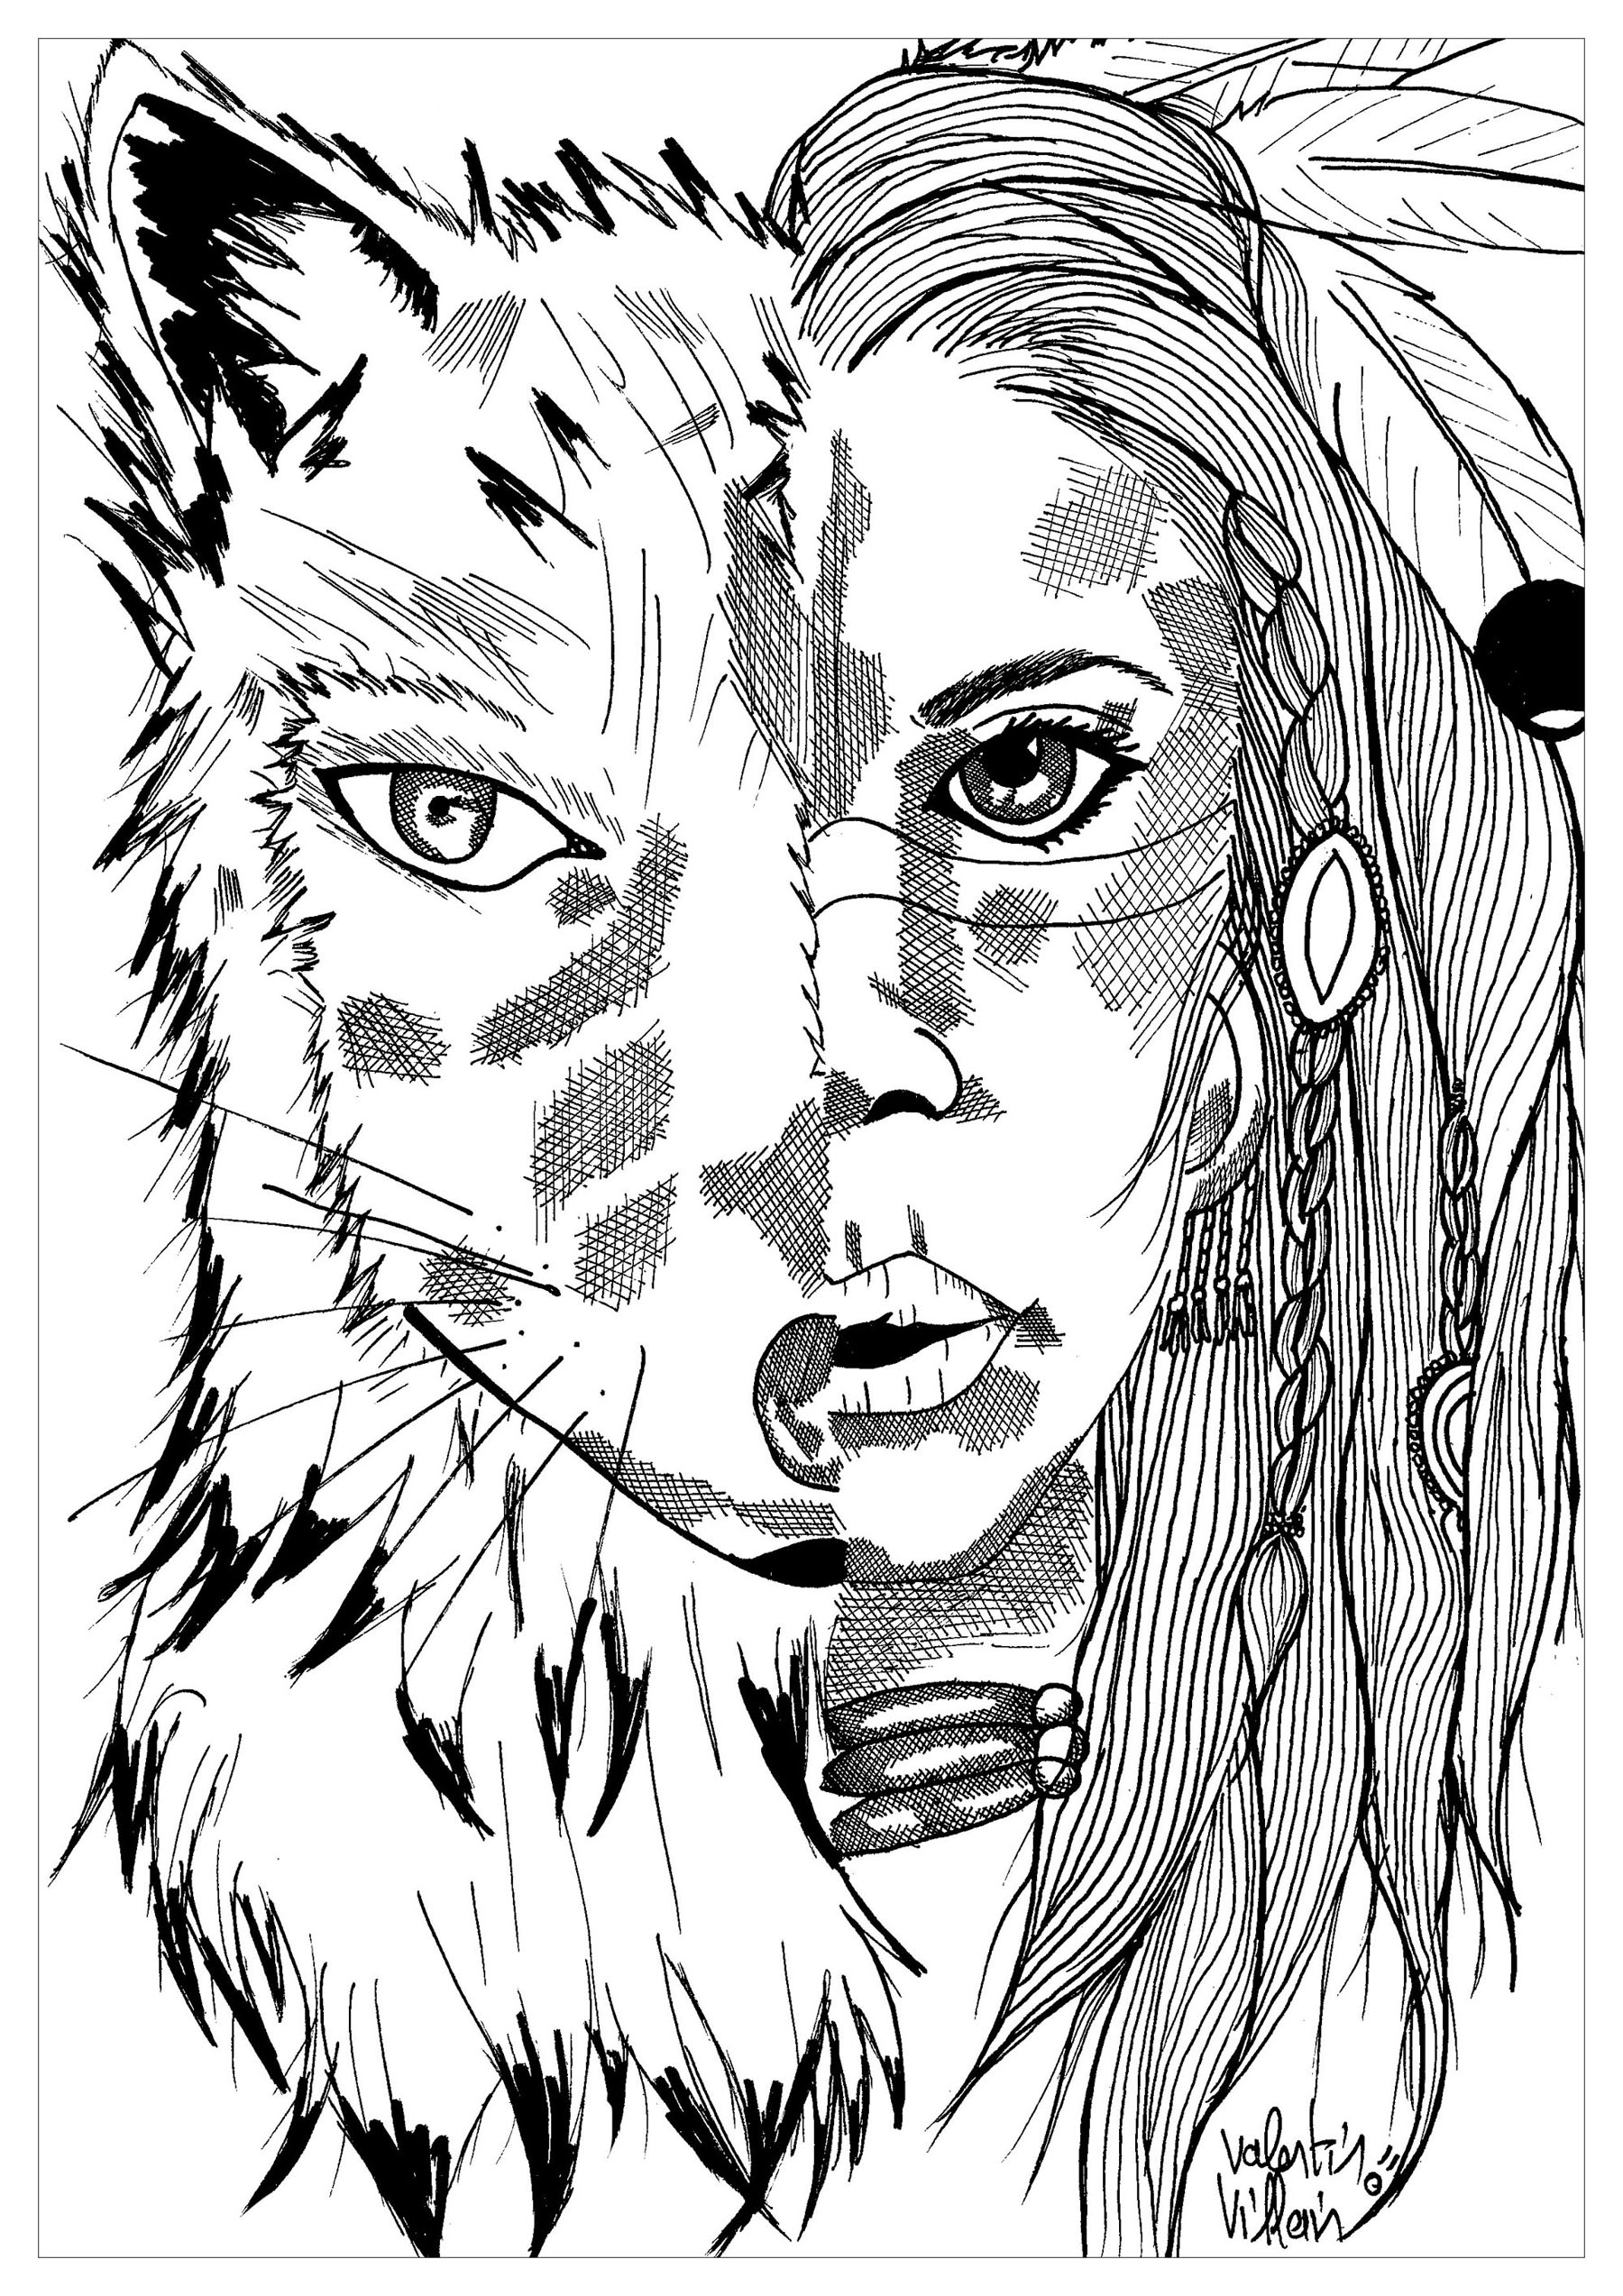 Indian wolf - Native American Adult Coloring Pages